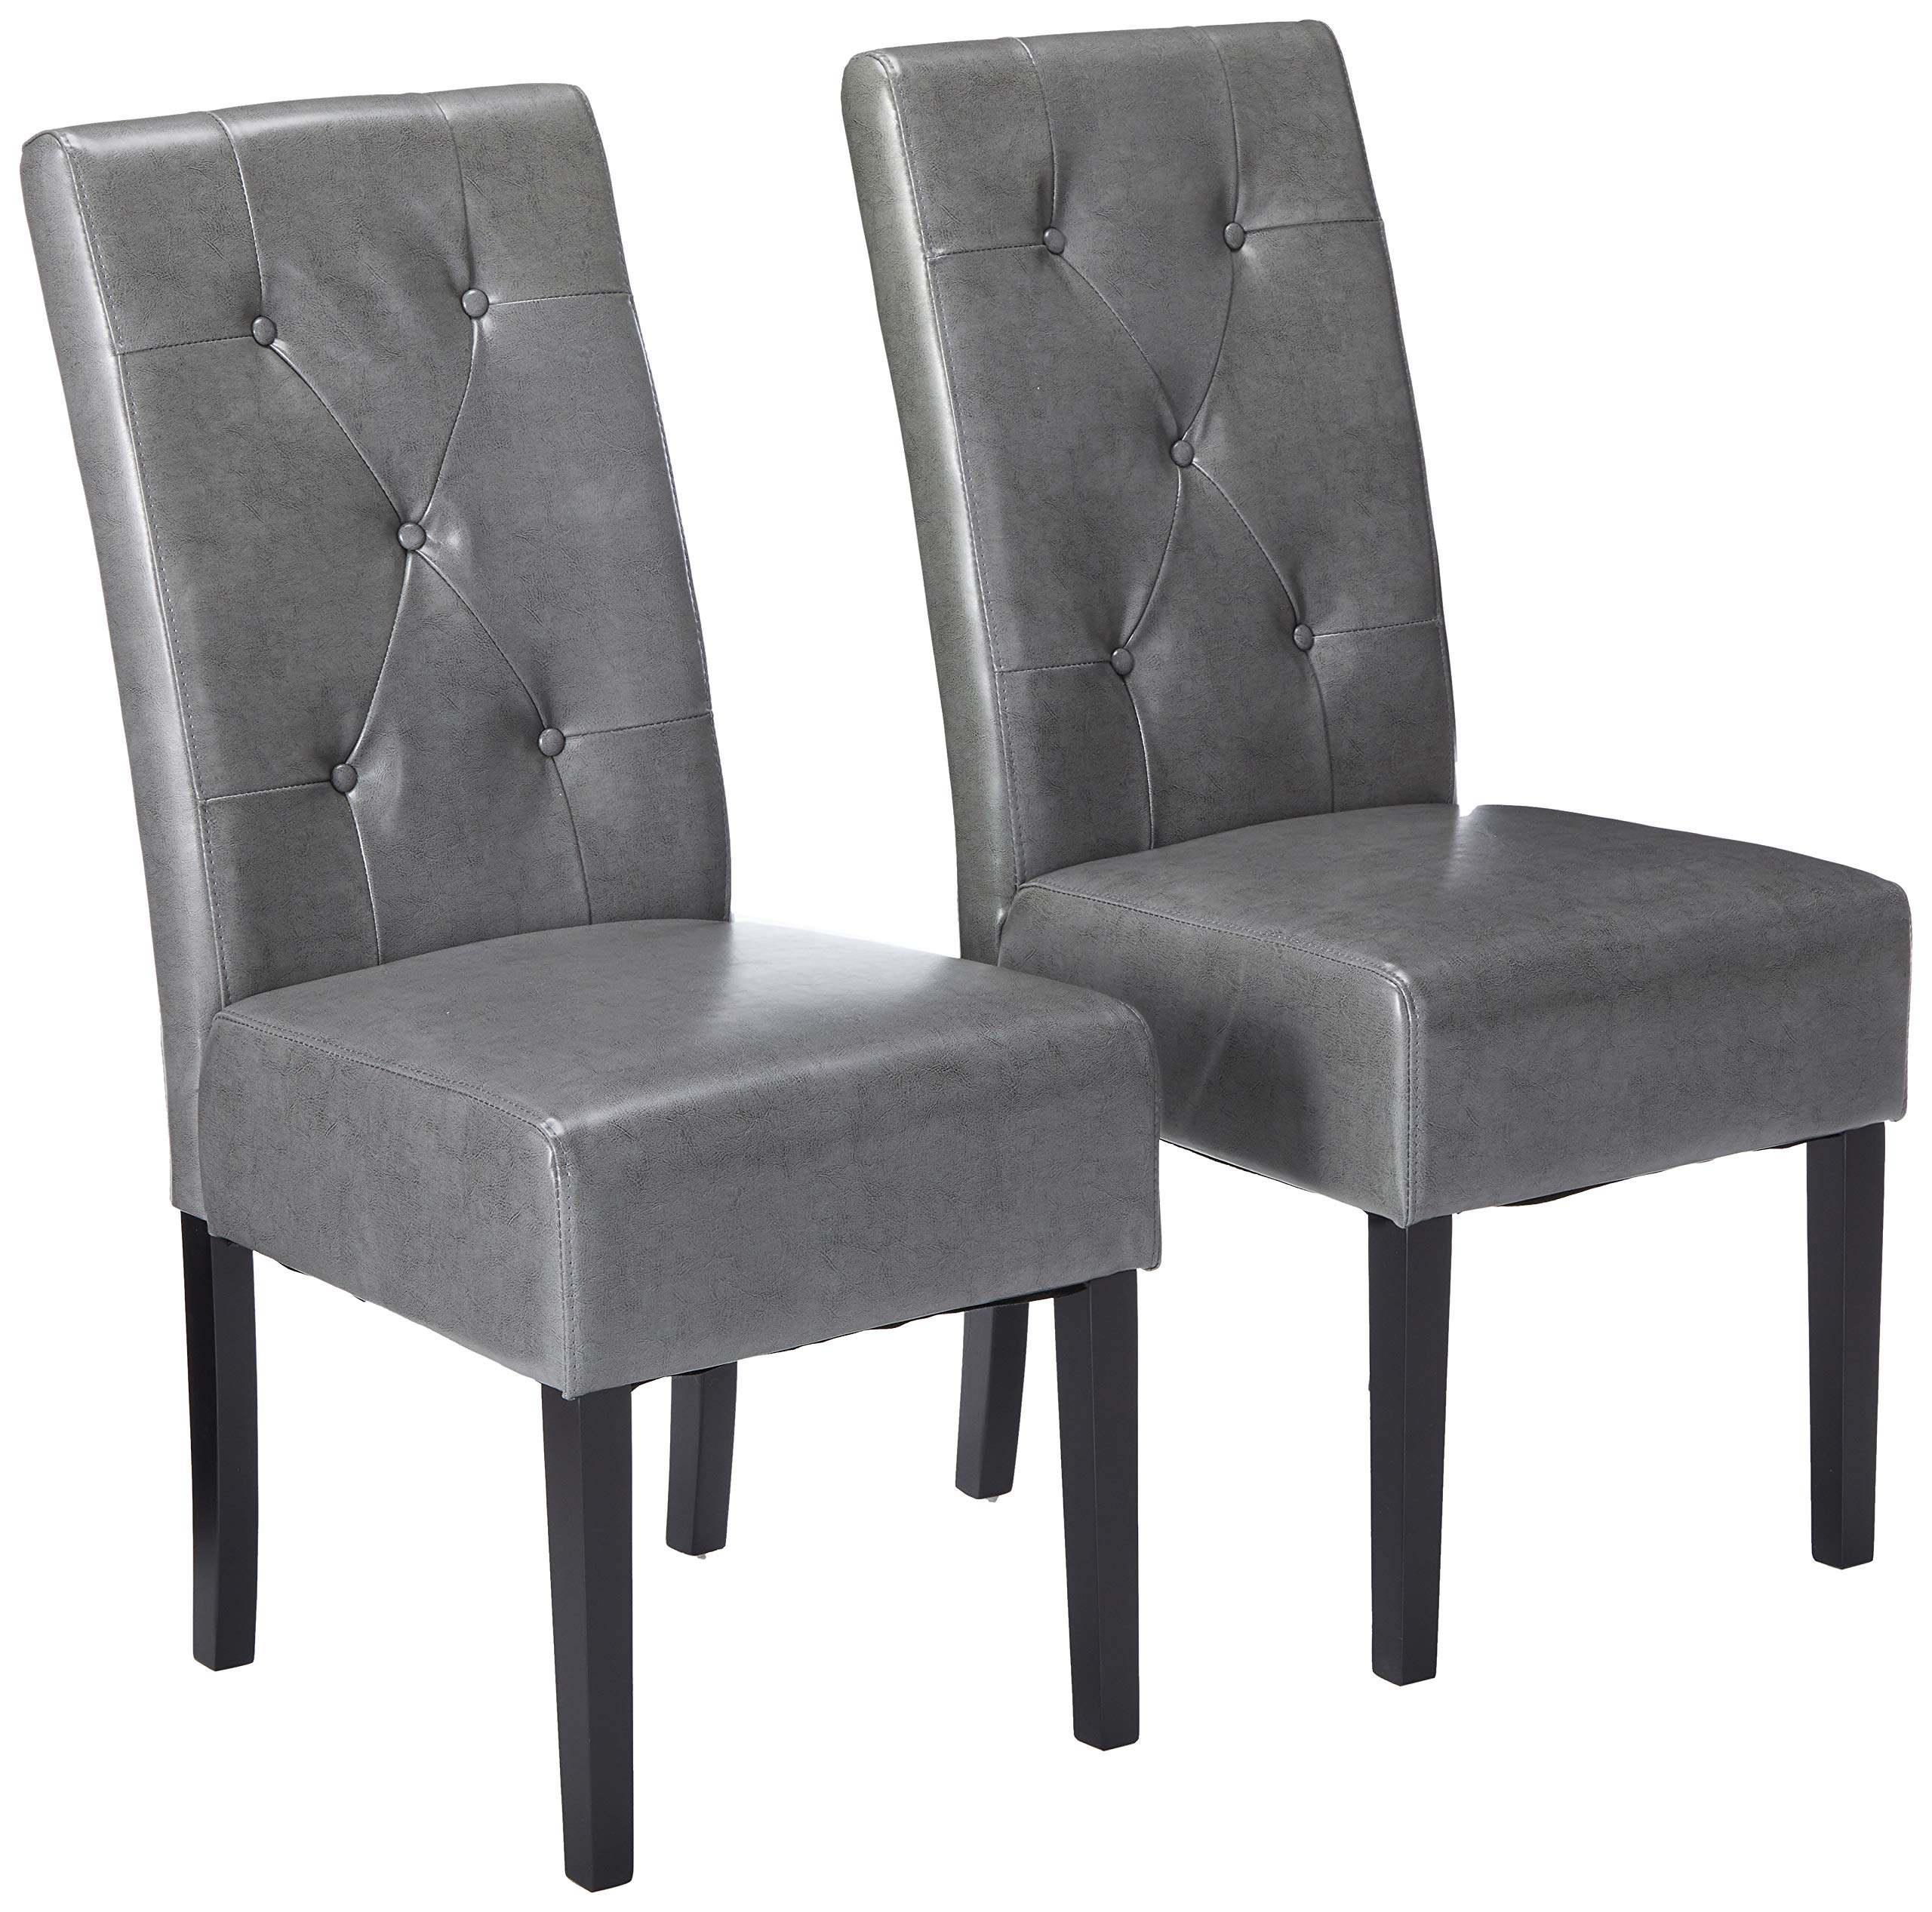 Christopher Knight Home 214519 Alexander Grey Leather Dining Chairs (Set of 2), by Christopher Knight Home (Image #1)